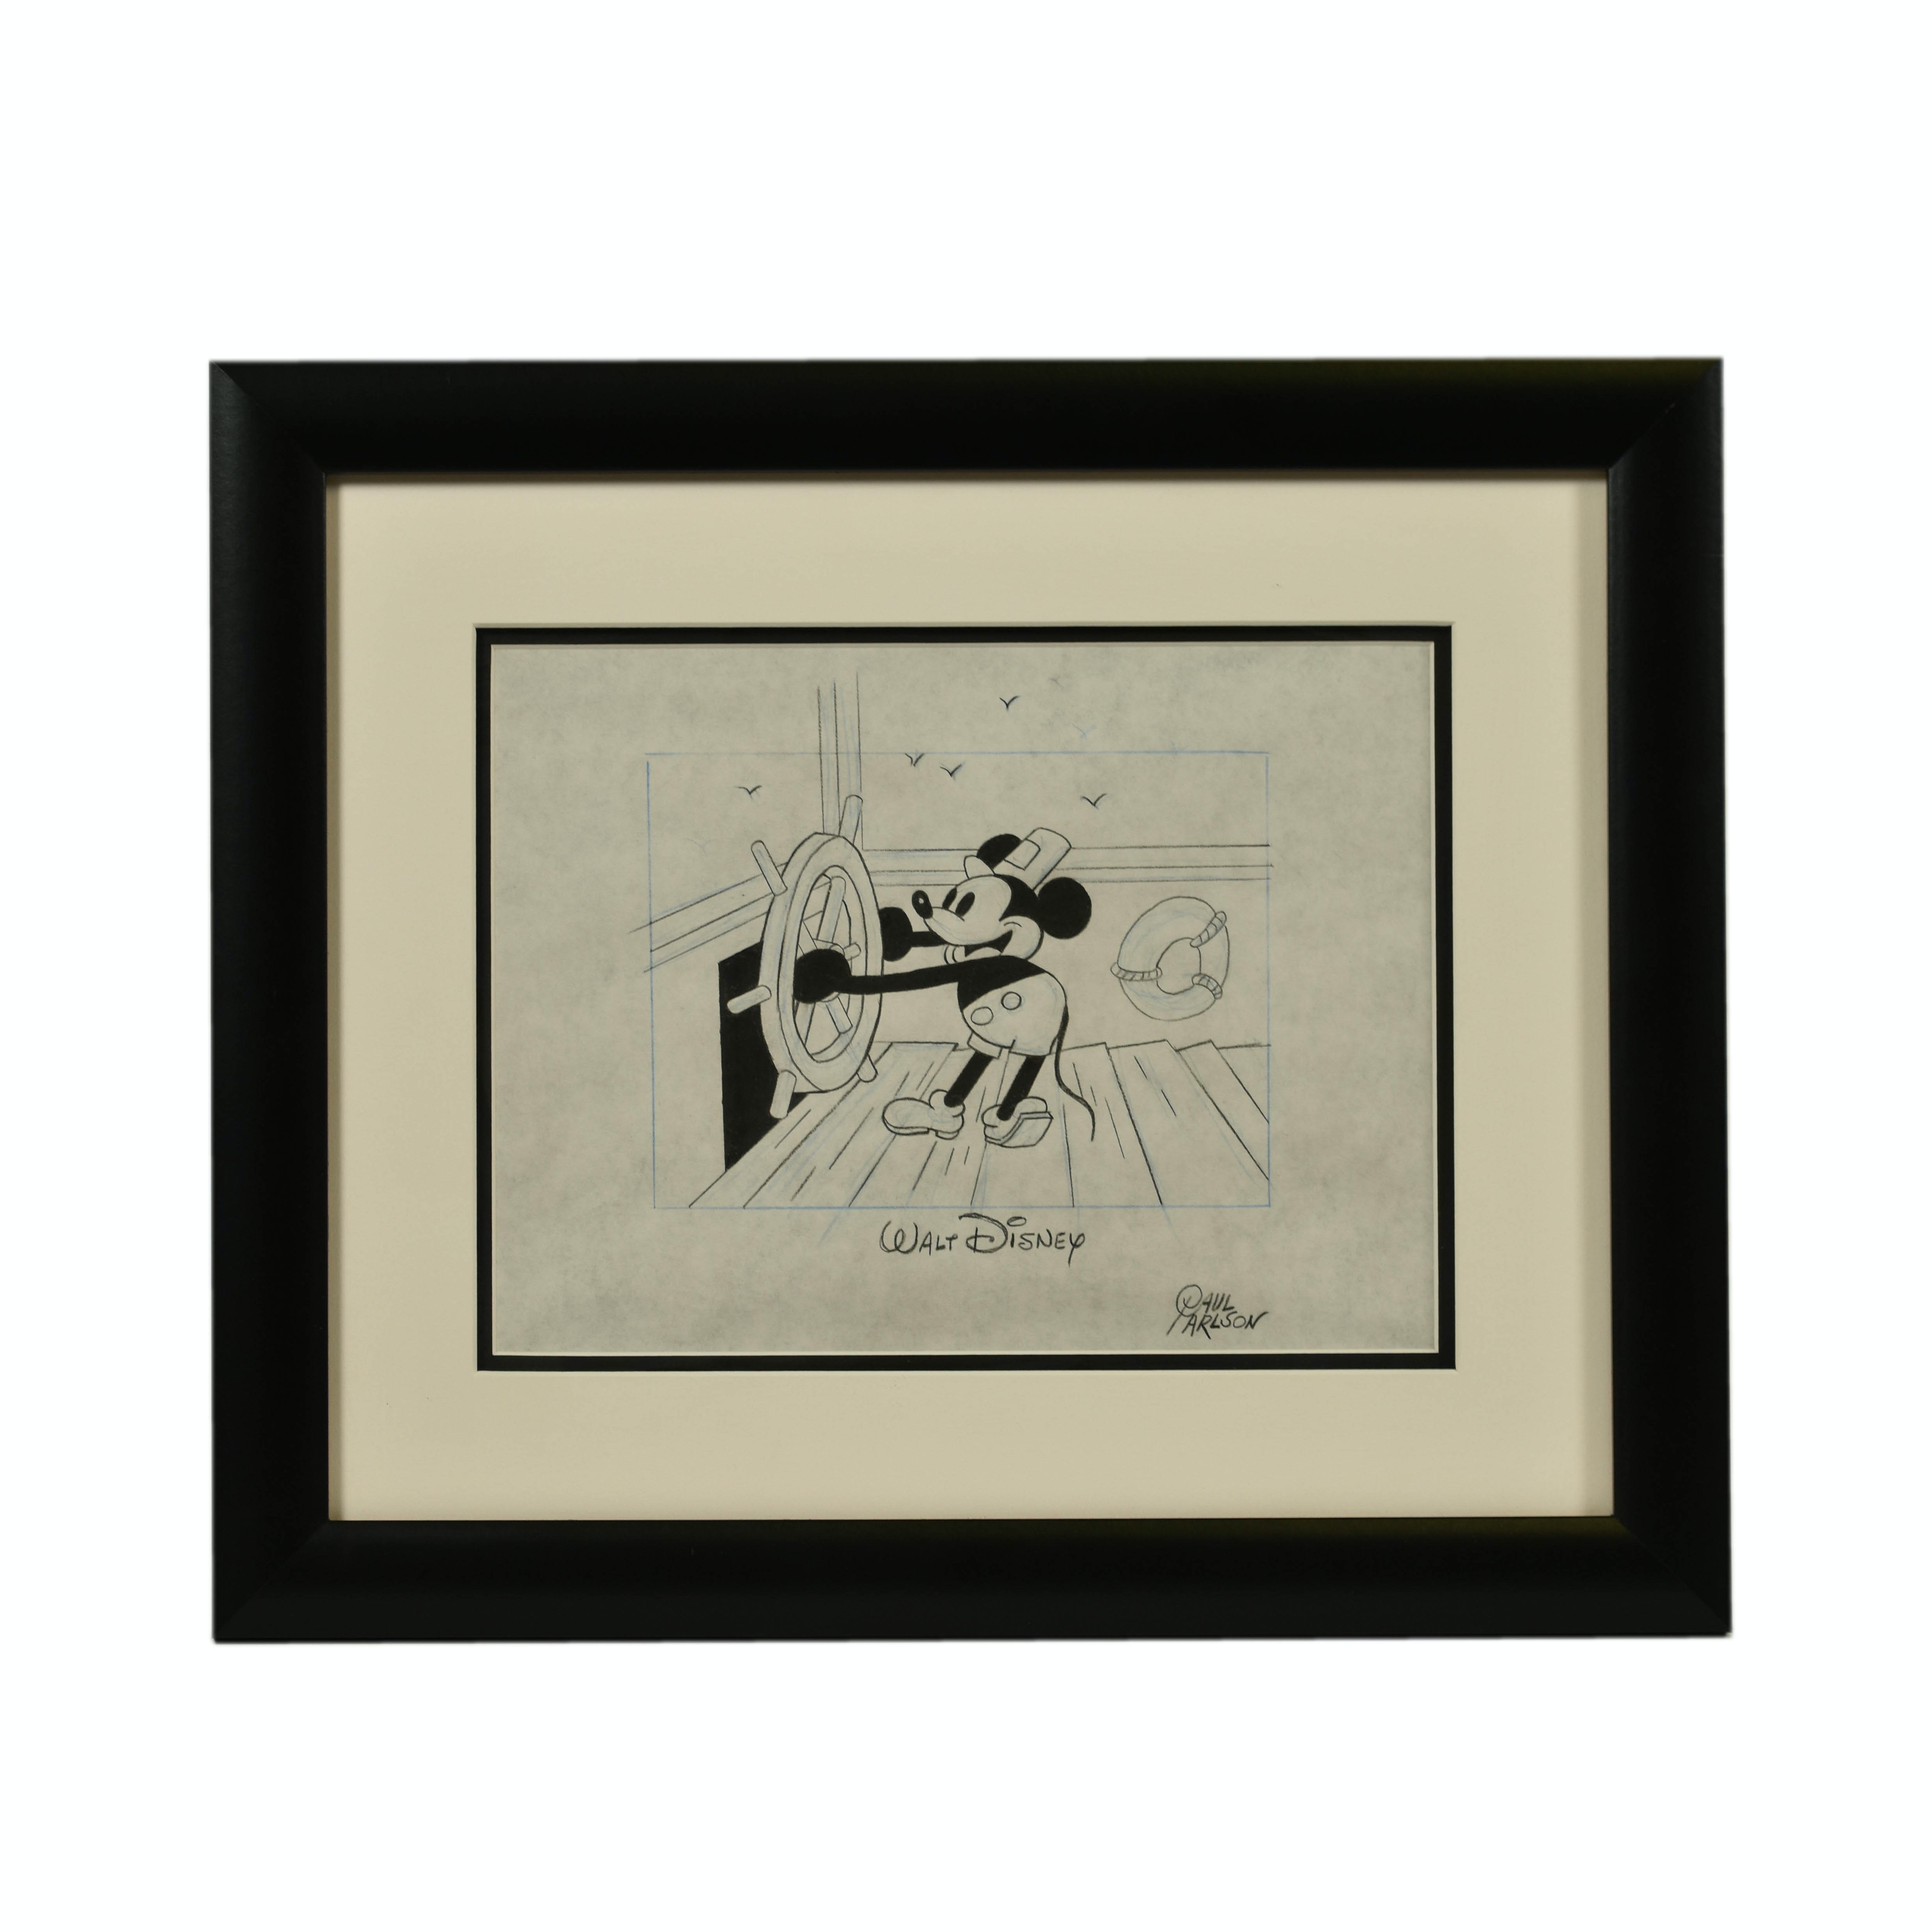 Walt Disney Framed Sketch - Steamboat Willie - Signed by Paul Carlson